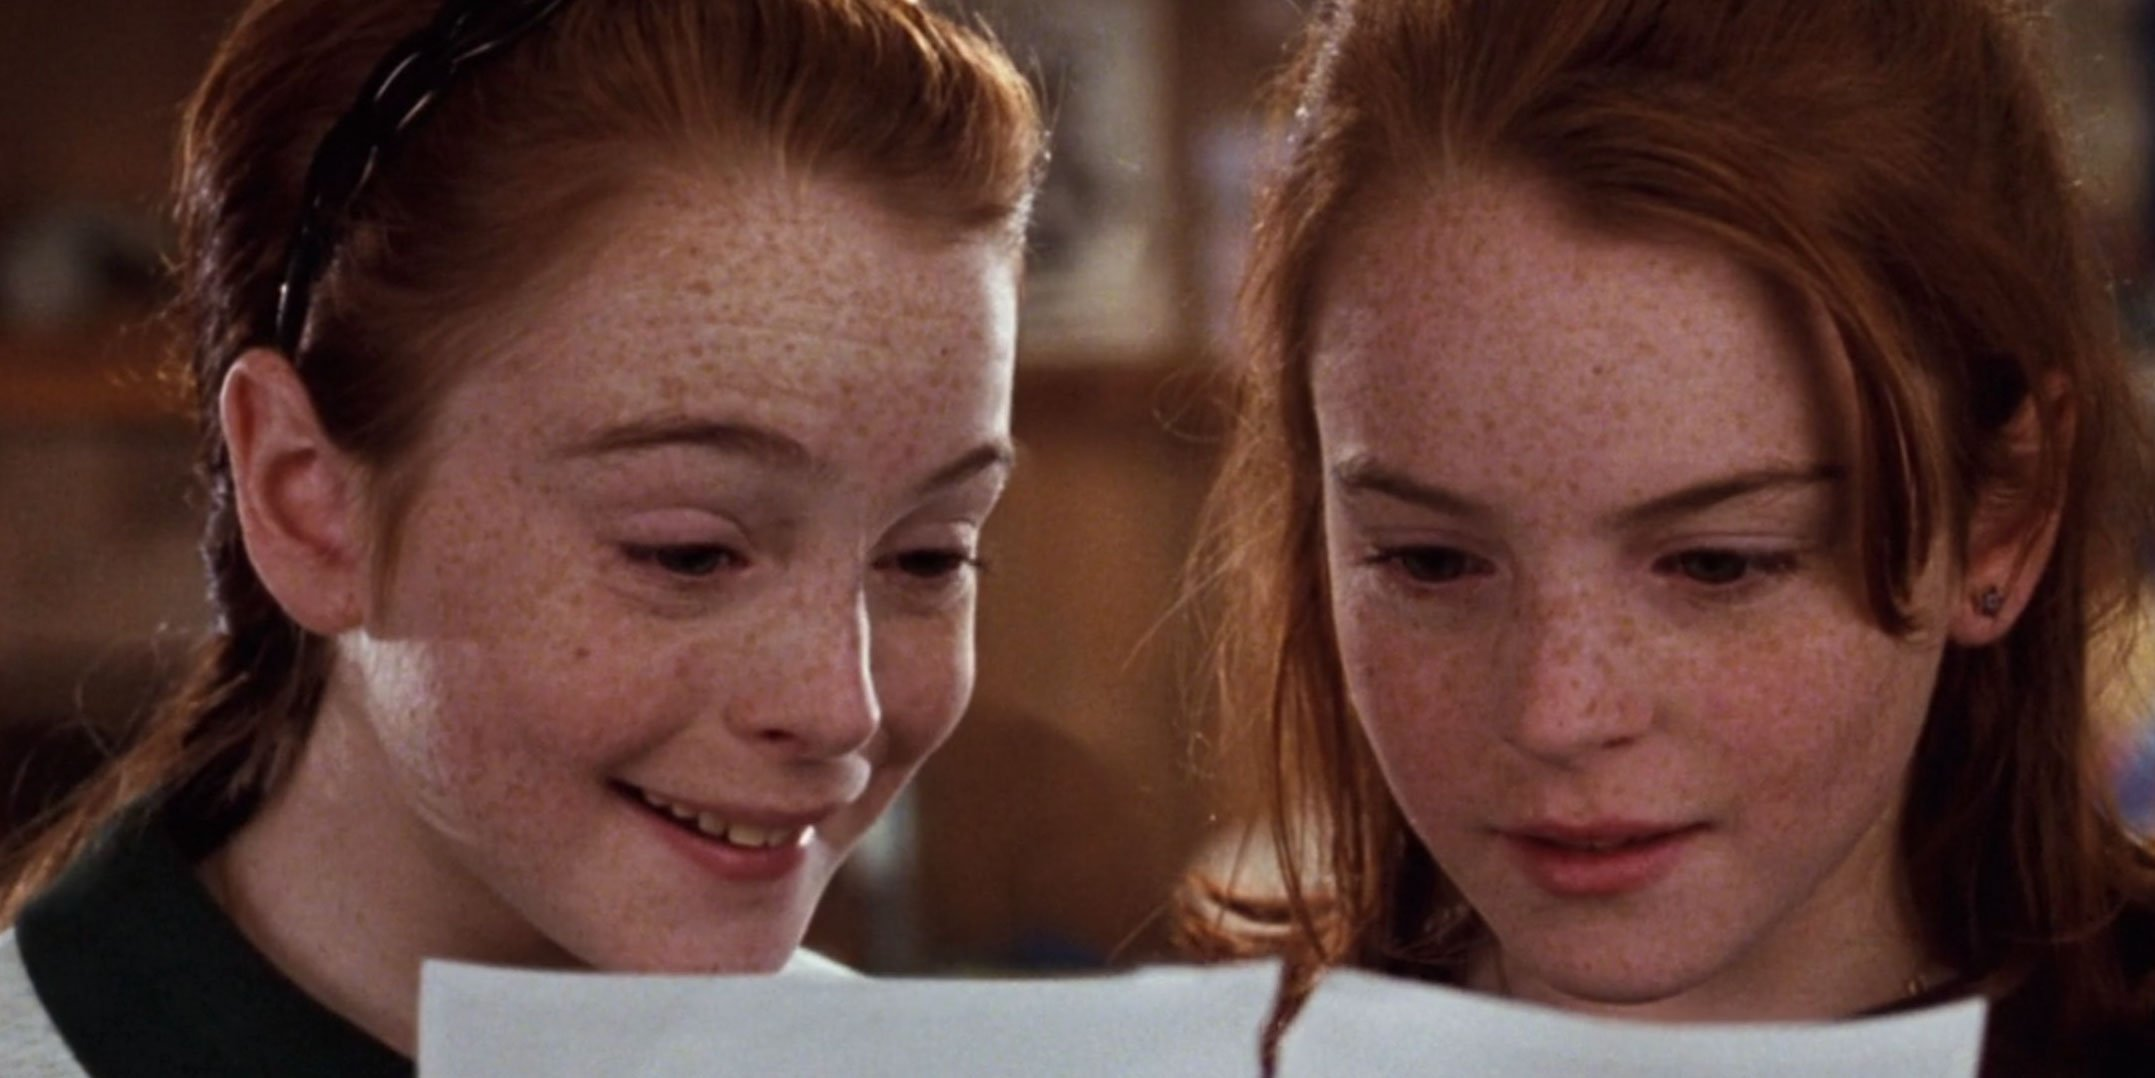 Annie and Hallie realizing they're twins.